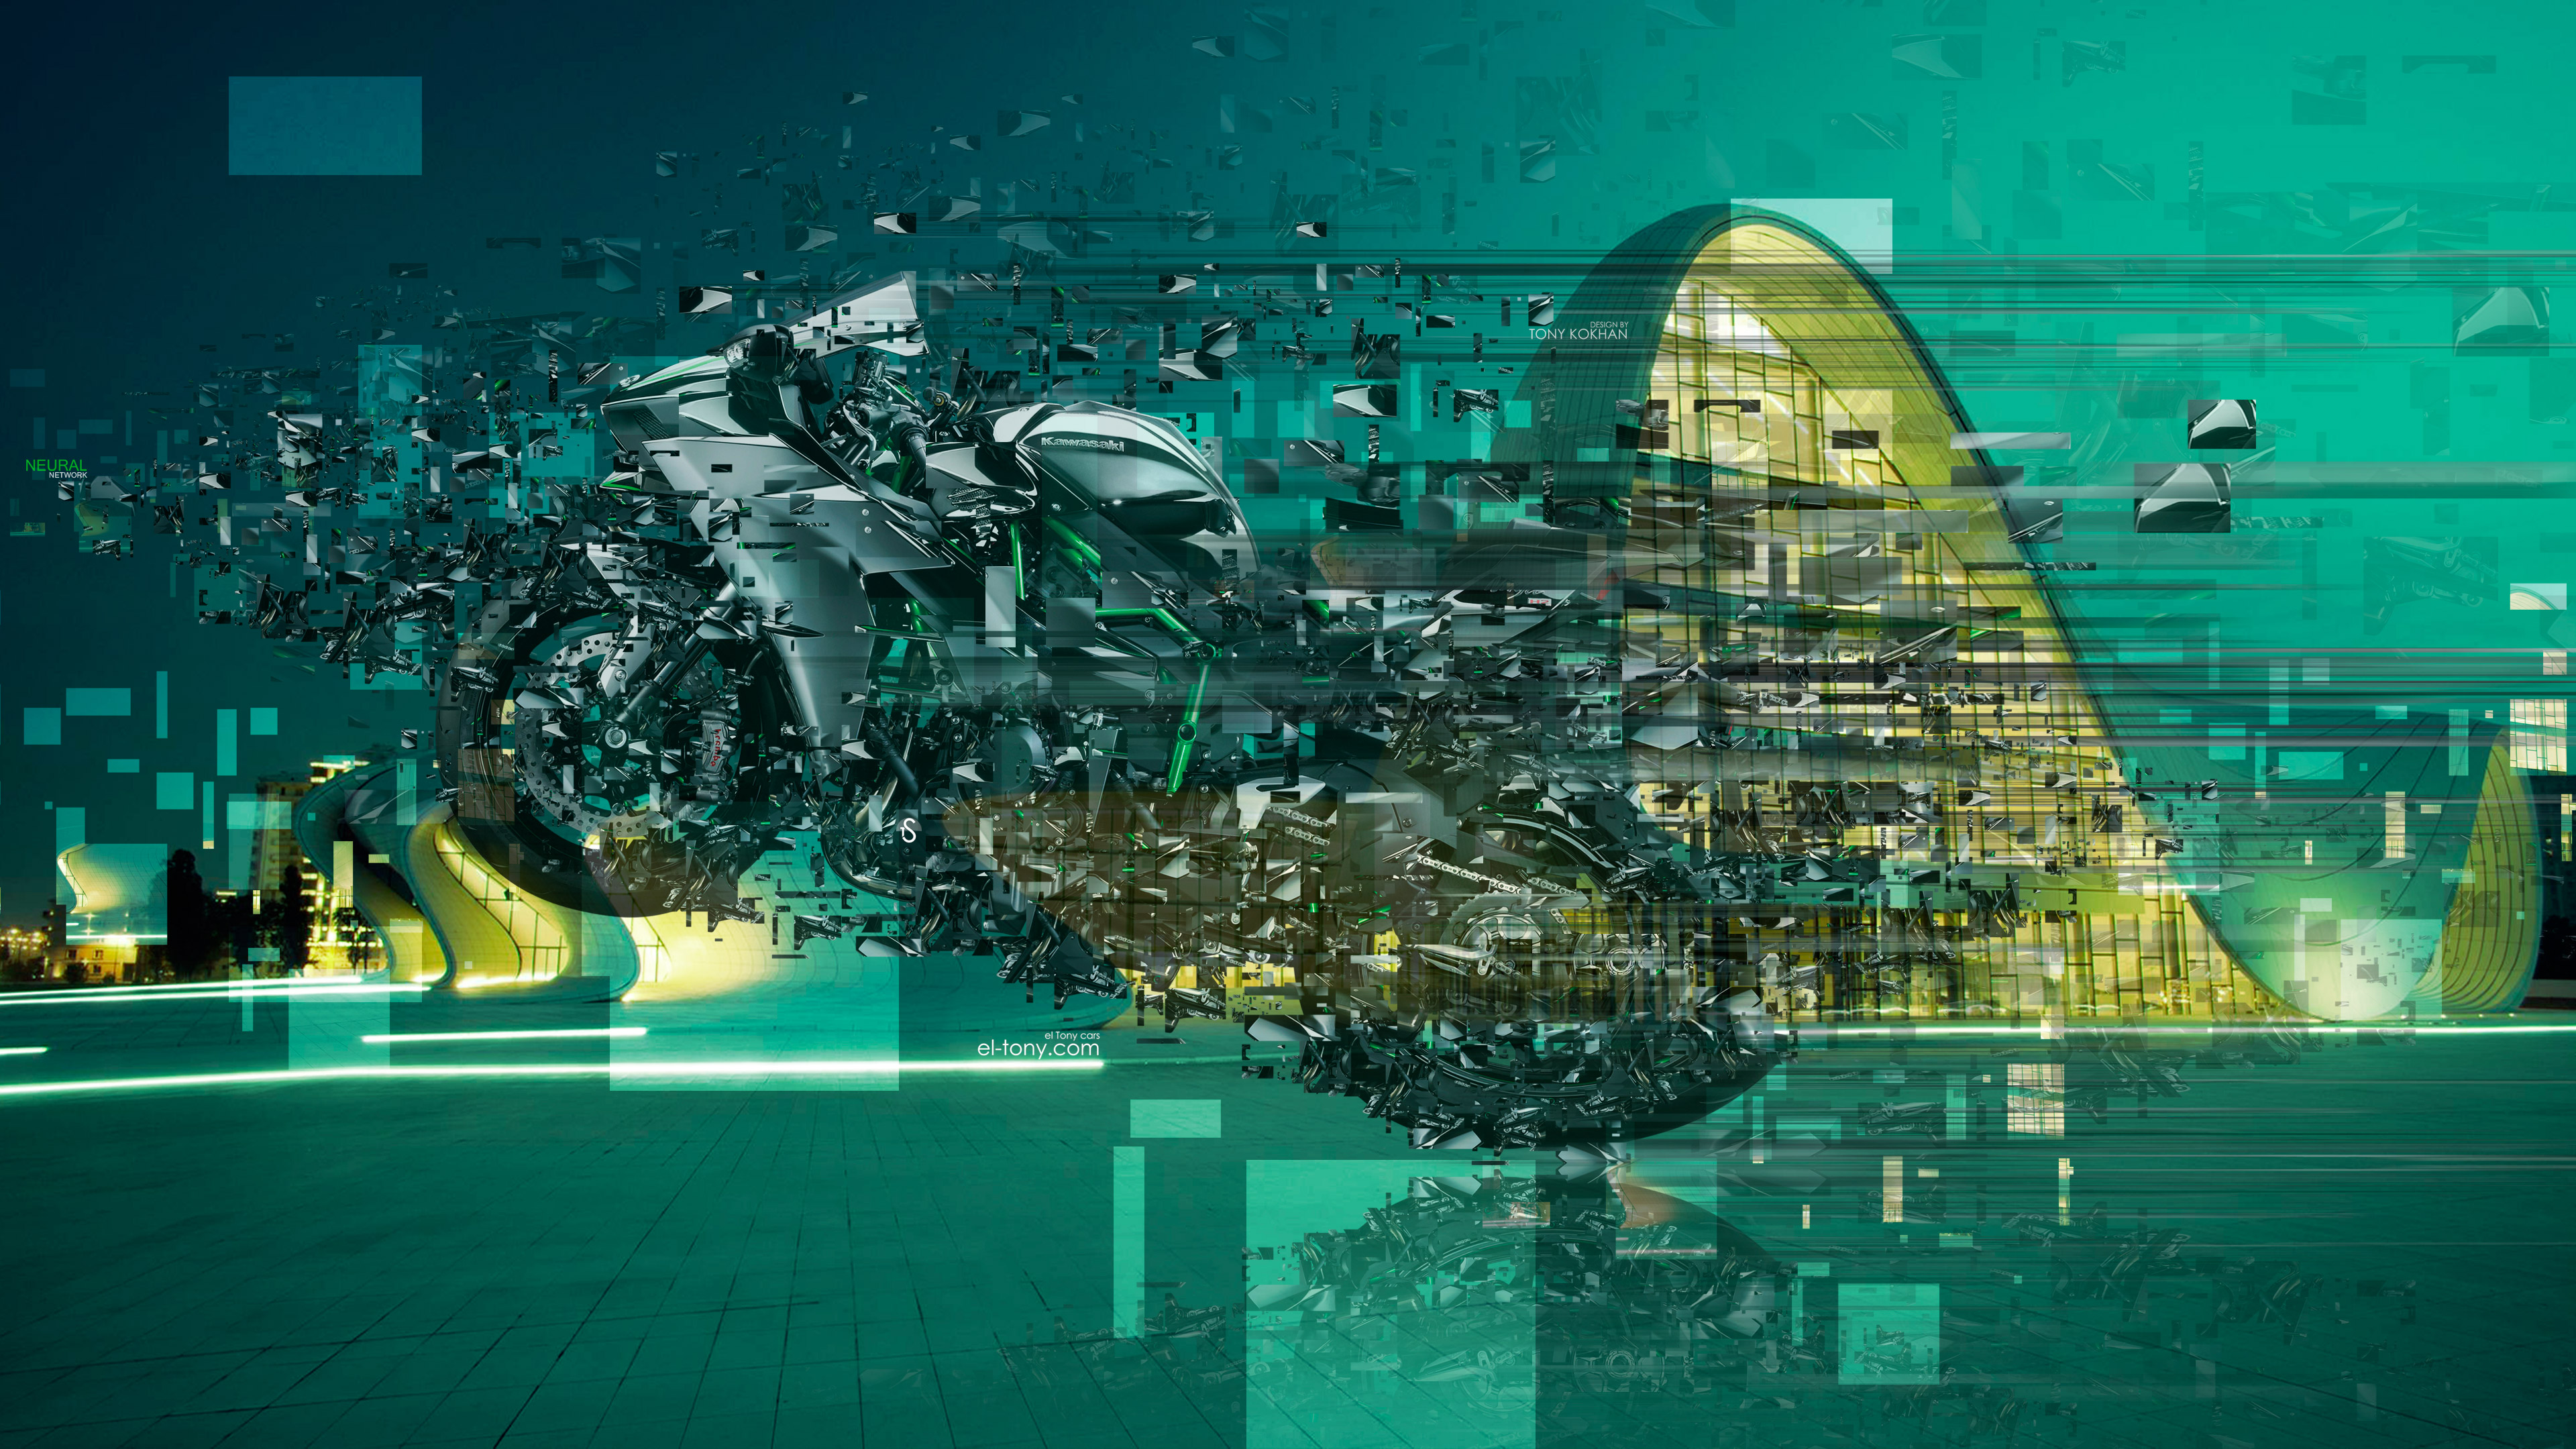 Moto-Kawasaki-Ninja-H2-Side-Super-Speed-Neural-Network-Crystal-Azerbaijan-Baku-City-Art-Bike-2018-Multicolors-4K-Wallpapers-TonyMoto-design-by-Tony-Kokhan-www.el-tony.com-image